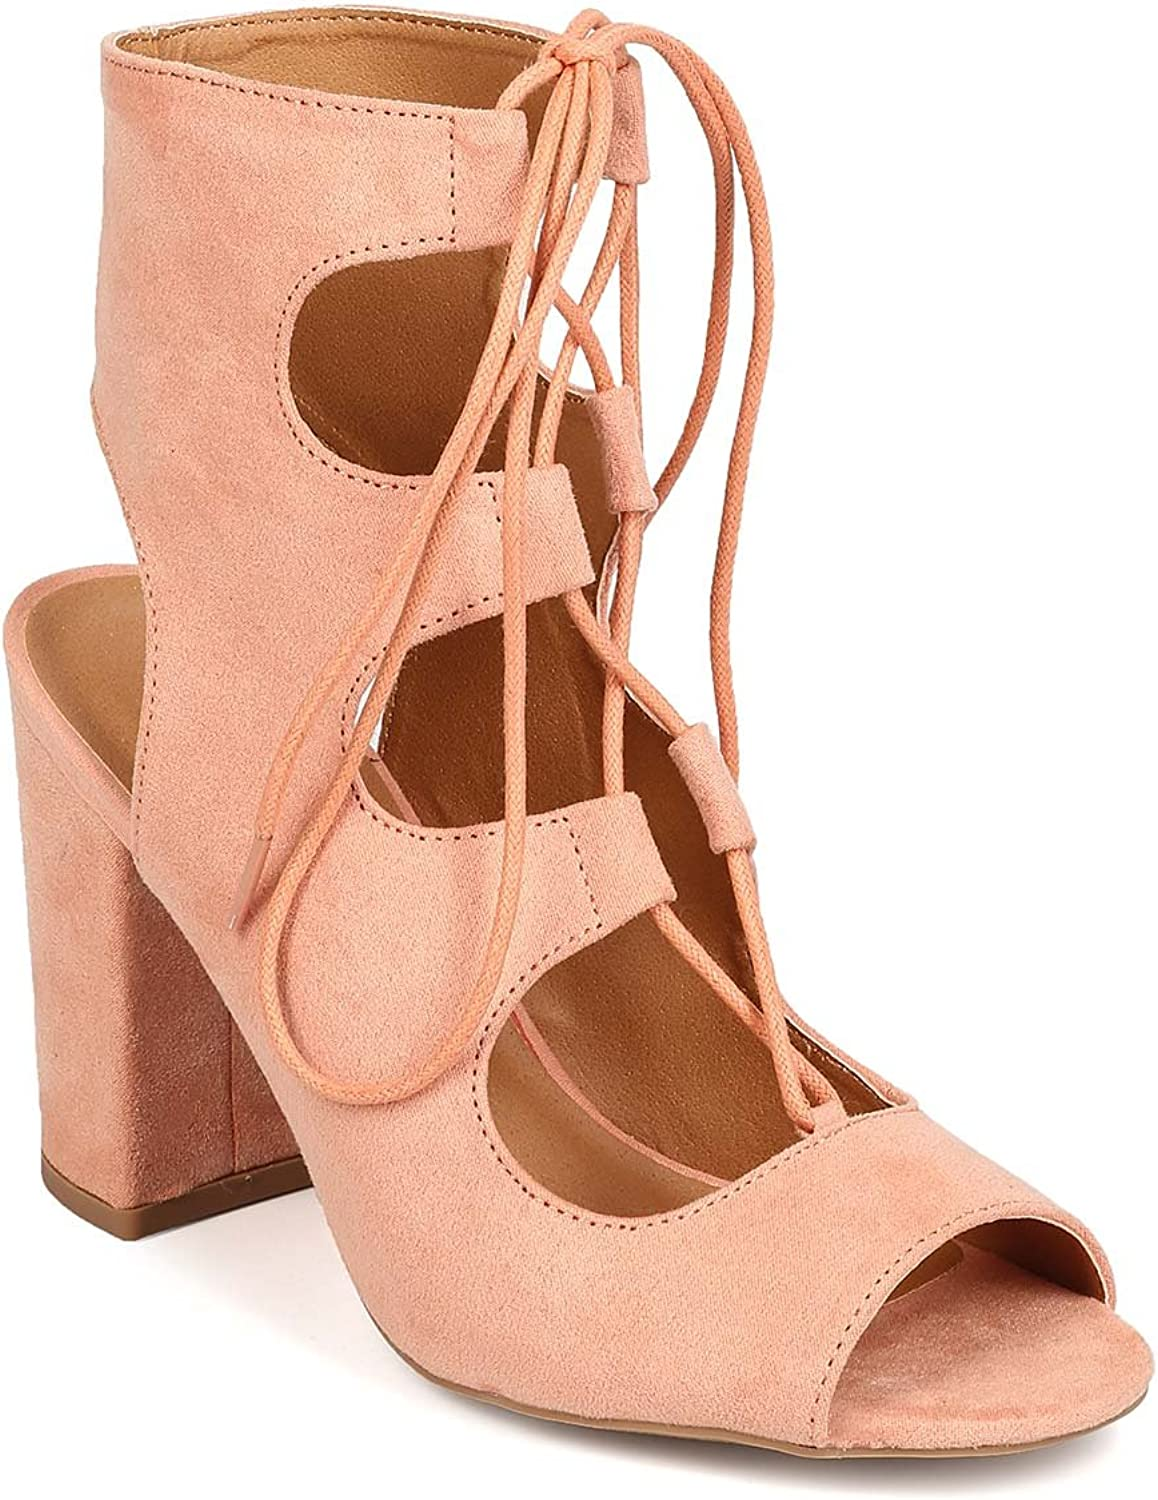 Qupid Faux Suede Peep Toe Lace up Chunky Heel FC33 - Melon